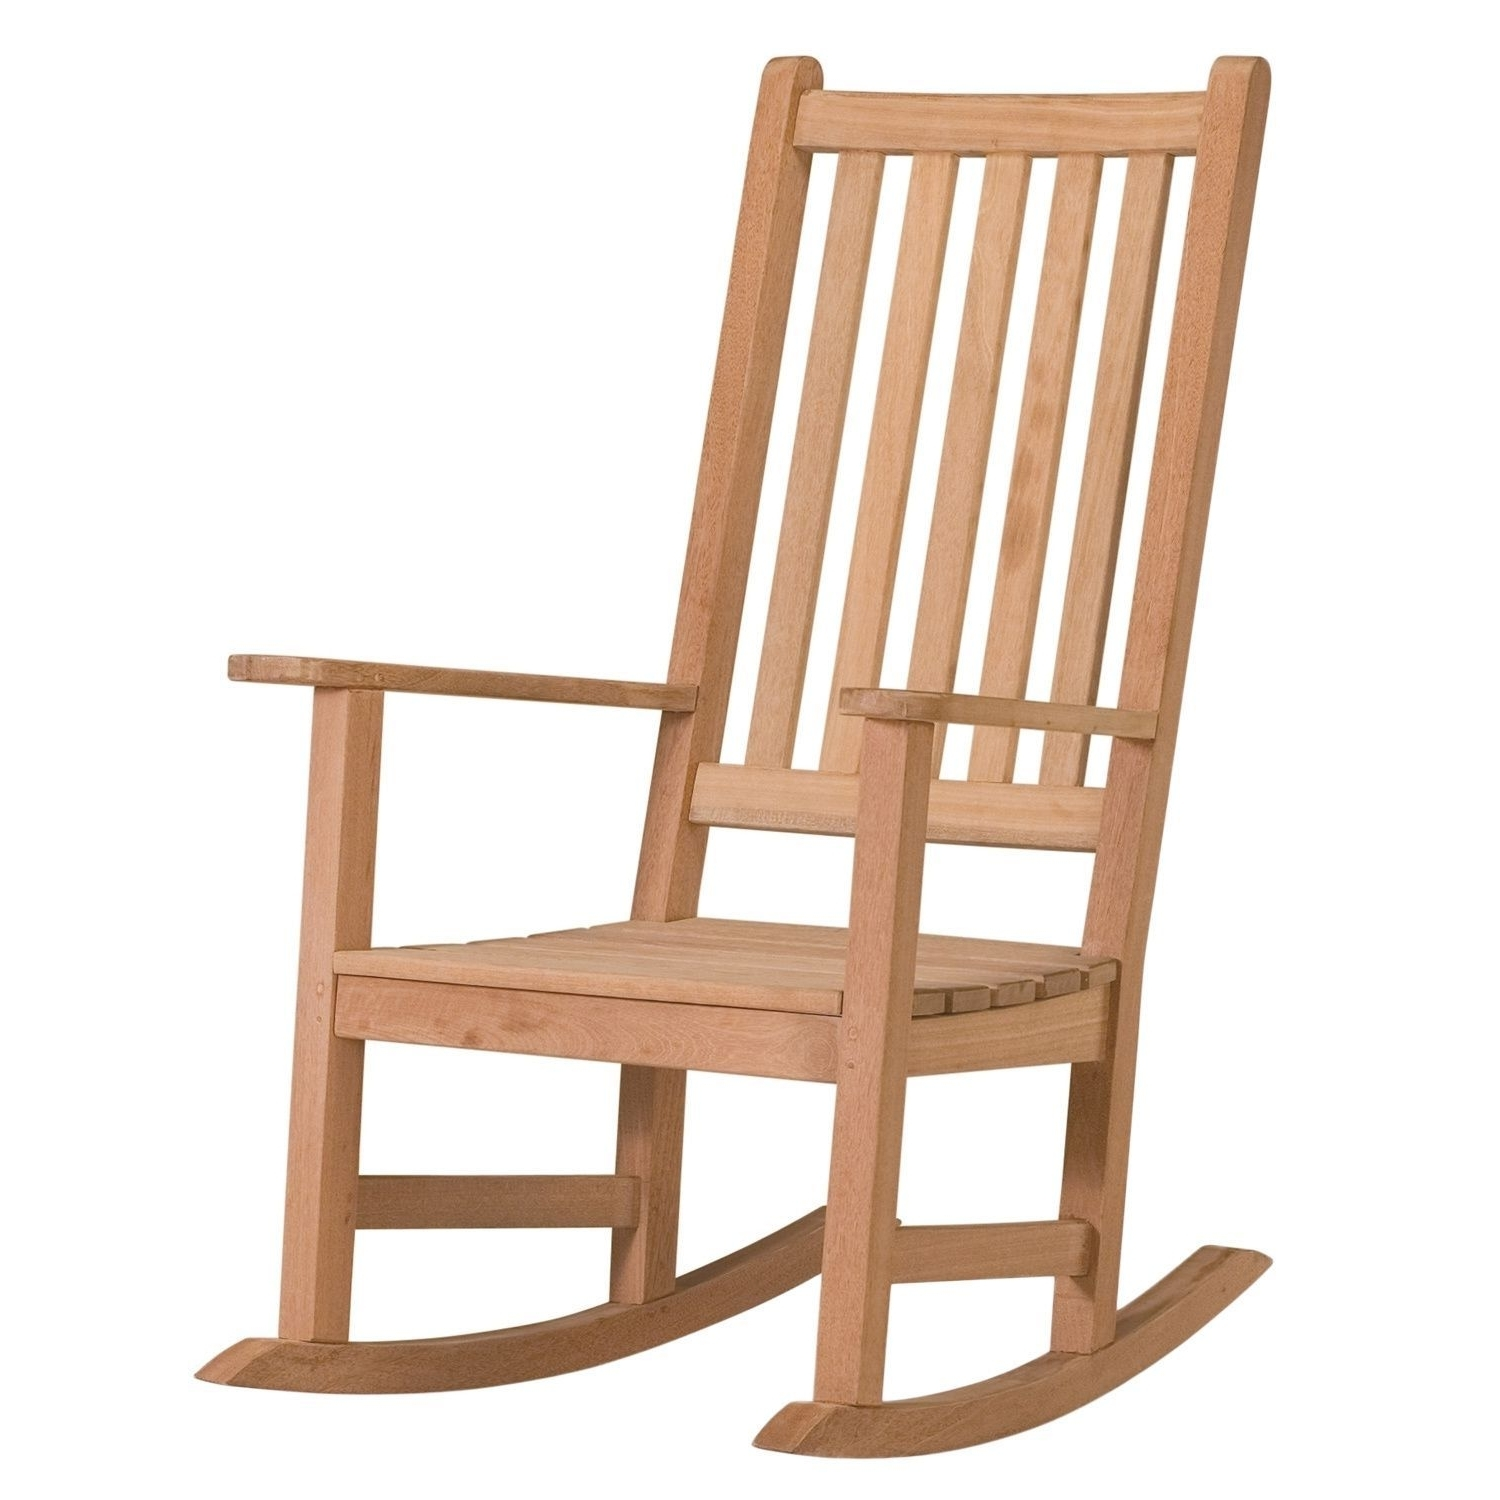 Most Popular Rocking Chairs For Garden With Regard To Oxford Garden Franklin Rocking Chair (Natural), Brown, Size Single (View 7 of 15)